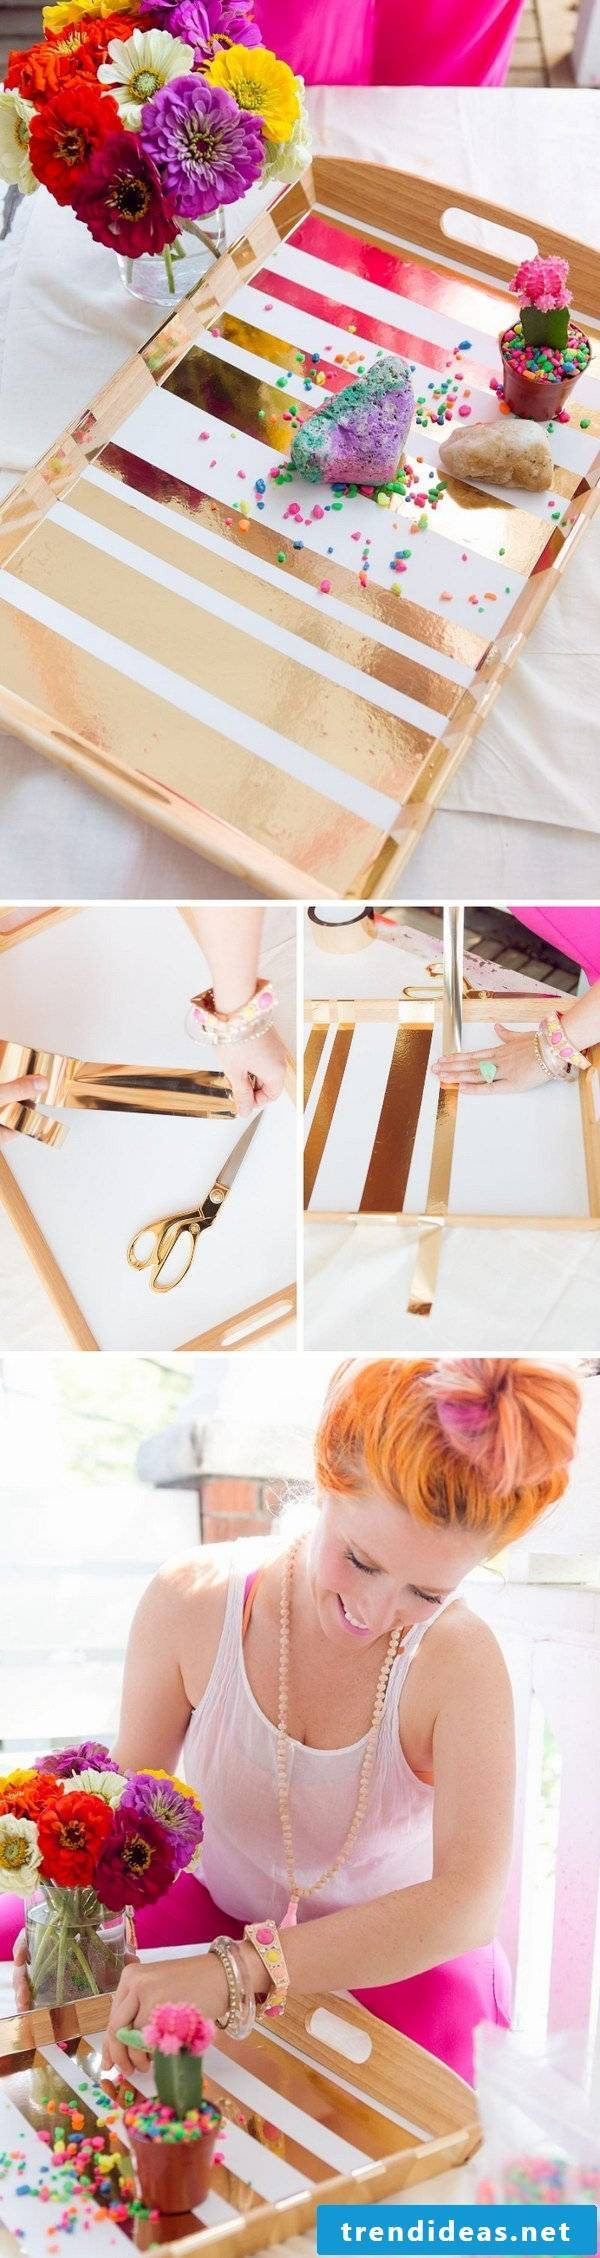 Mother's Day Gifts Tinker: DIY Ideas